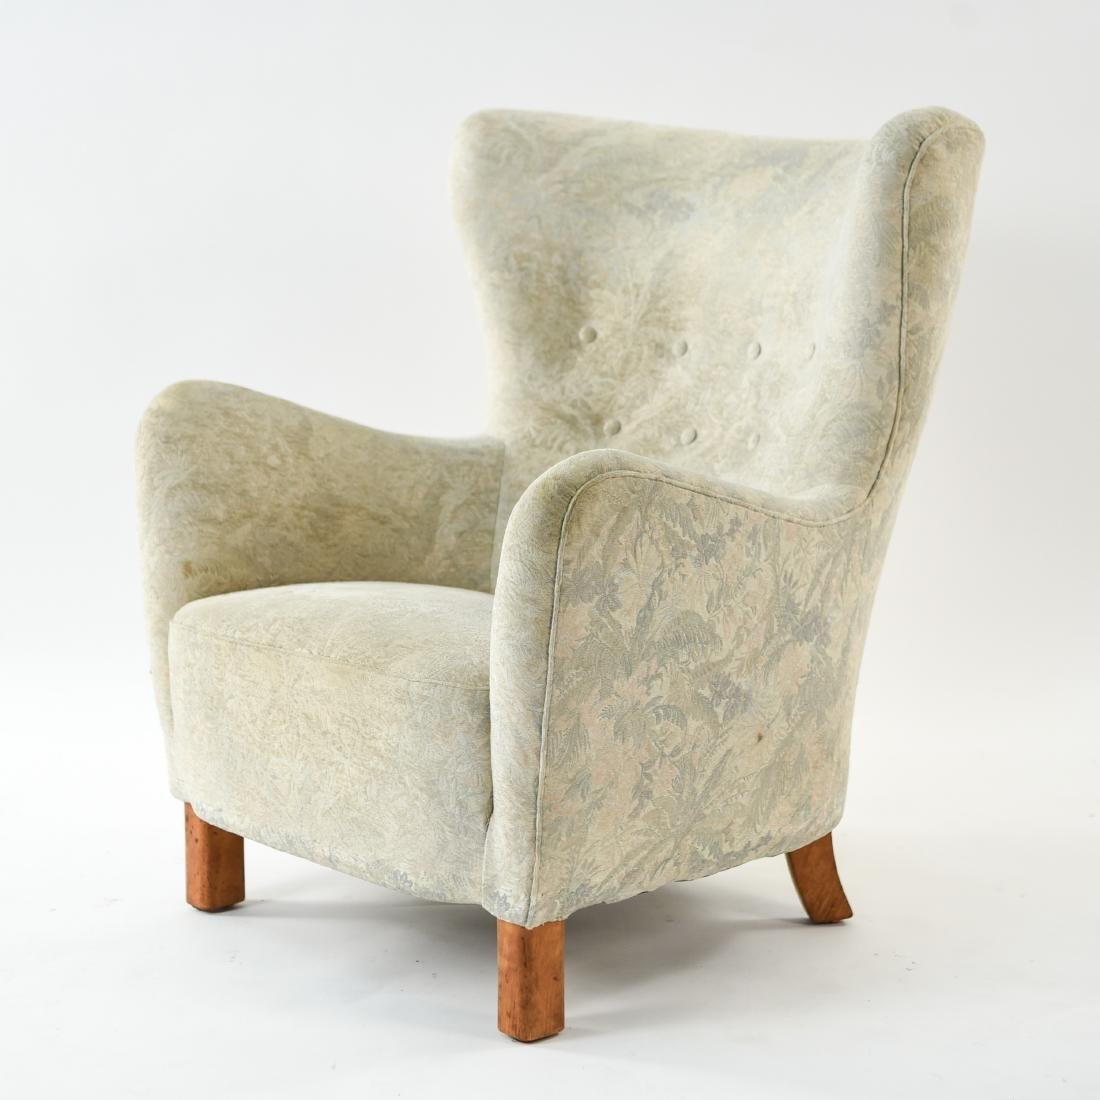 FRITZ HANSEN MODEL 1669 STYLE WINGBACK EASY CHAIR